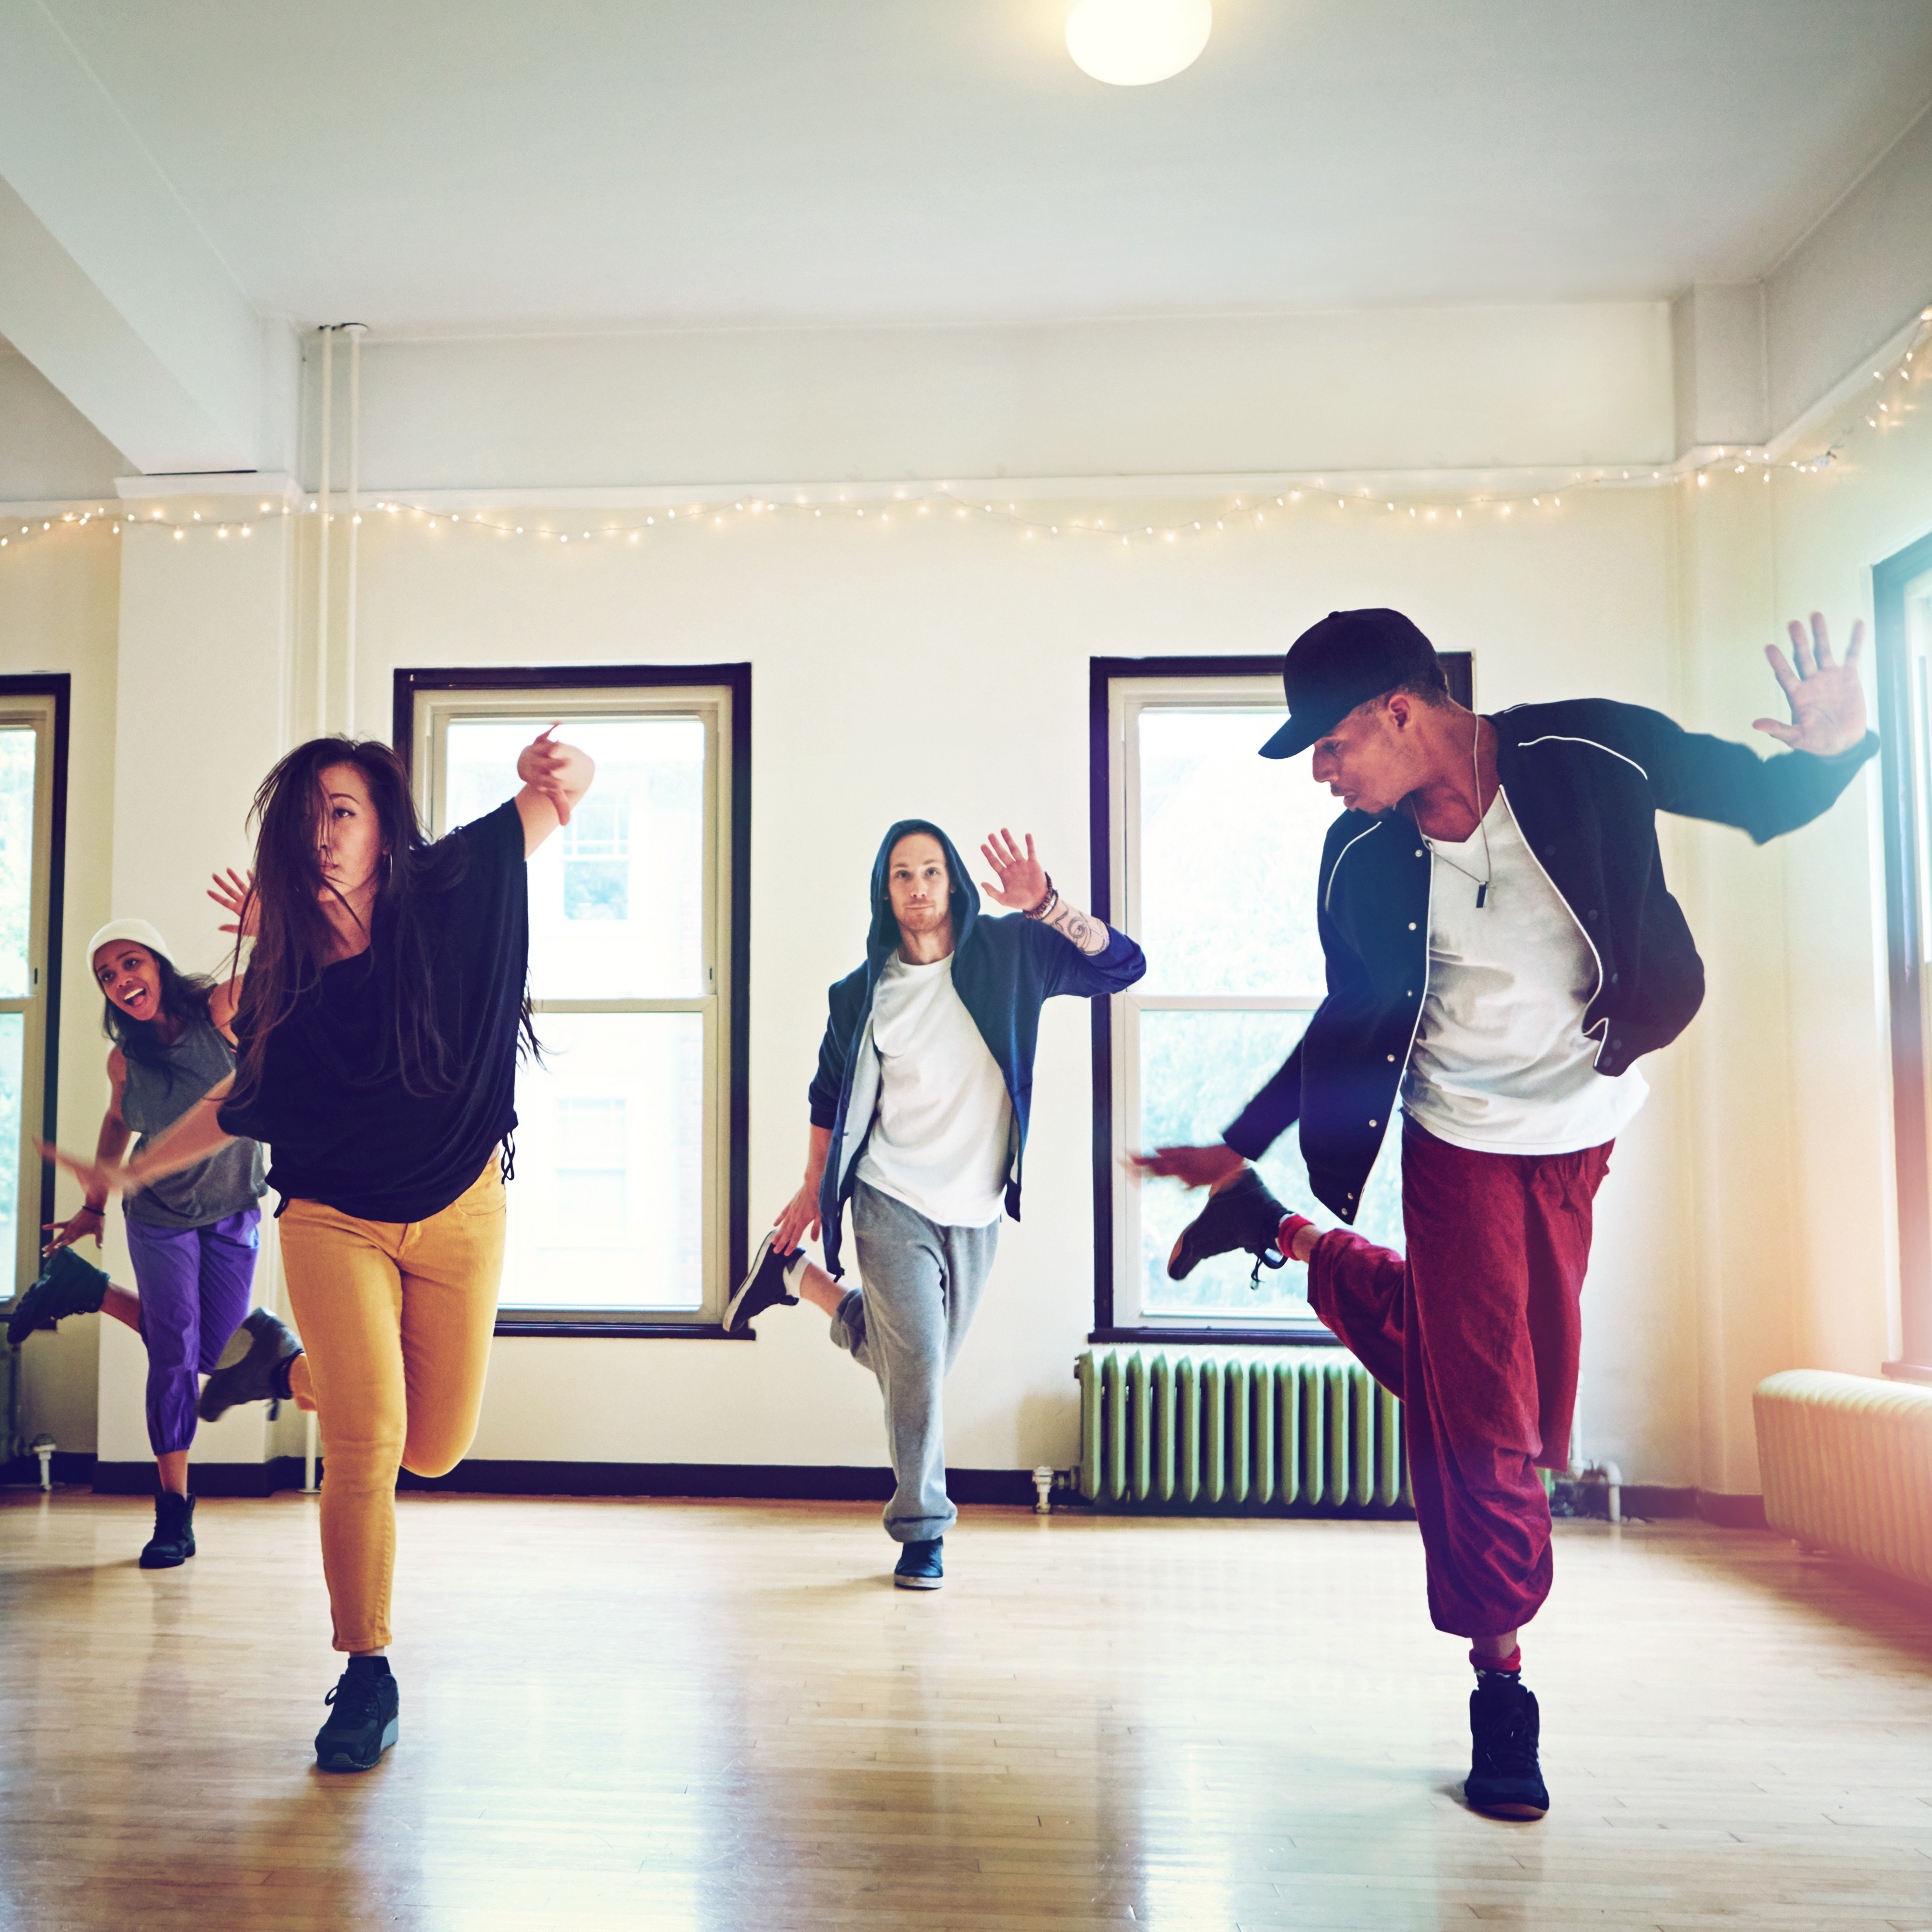 A group of young people dancing together in a studio